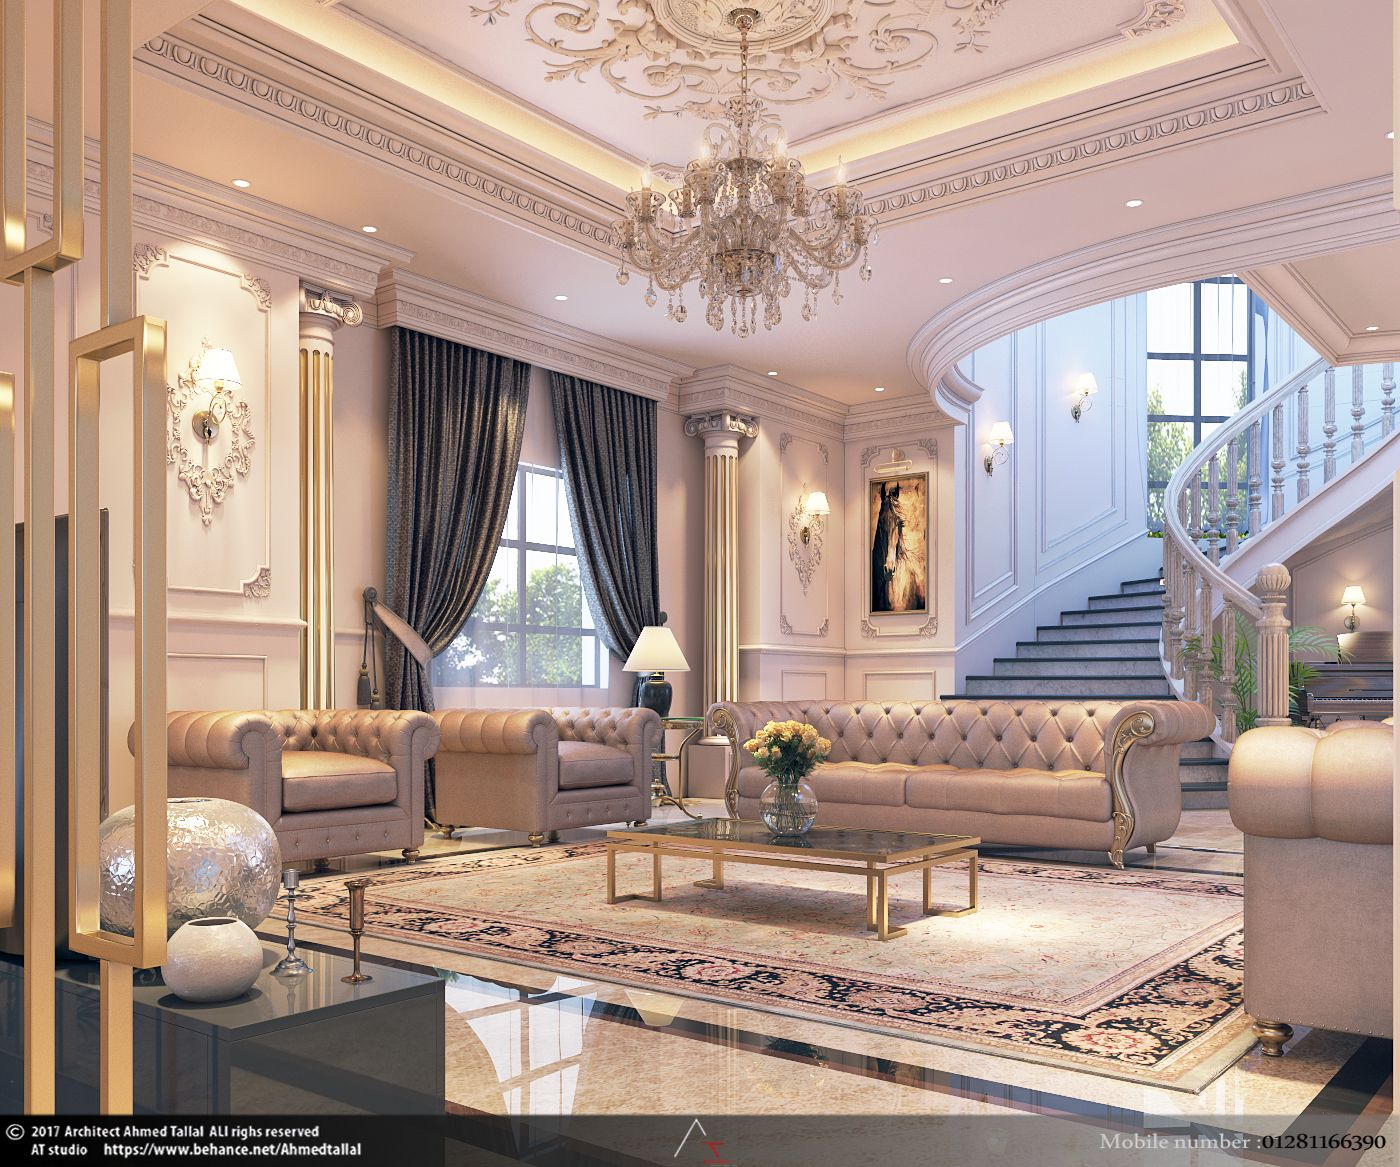 Luxury Homes Interior Decoration Living Room Designs Ideas: In The Heart Of The Maison (With Images)